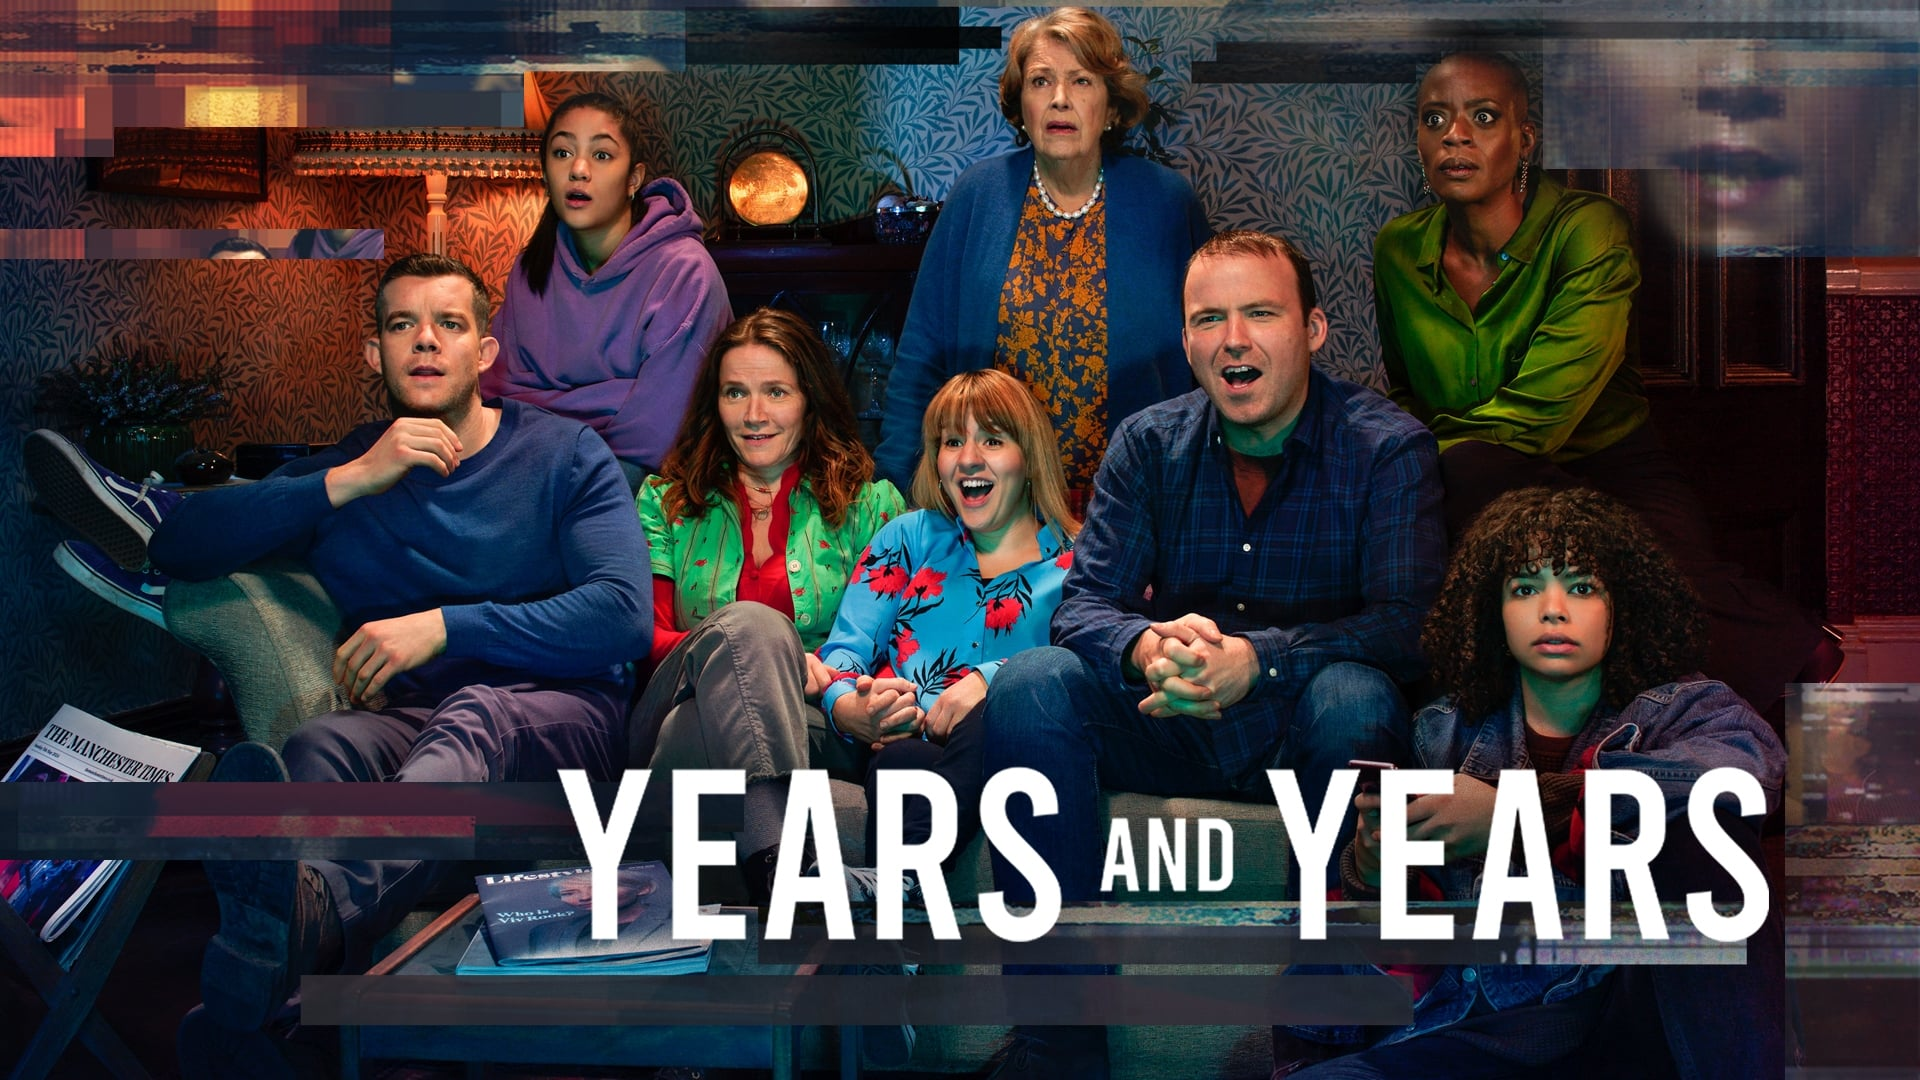 Miniseries Years and Years will release on Amazon Prime Video